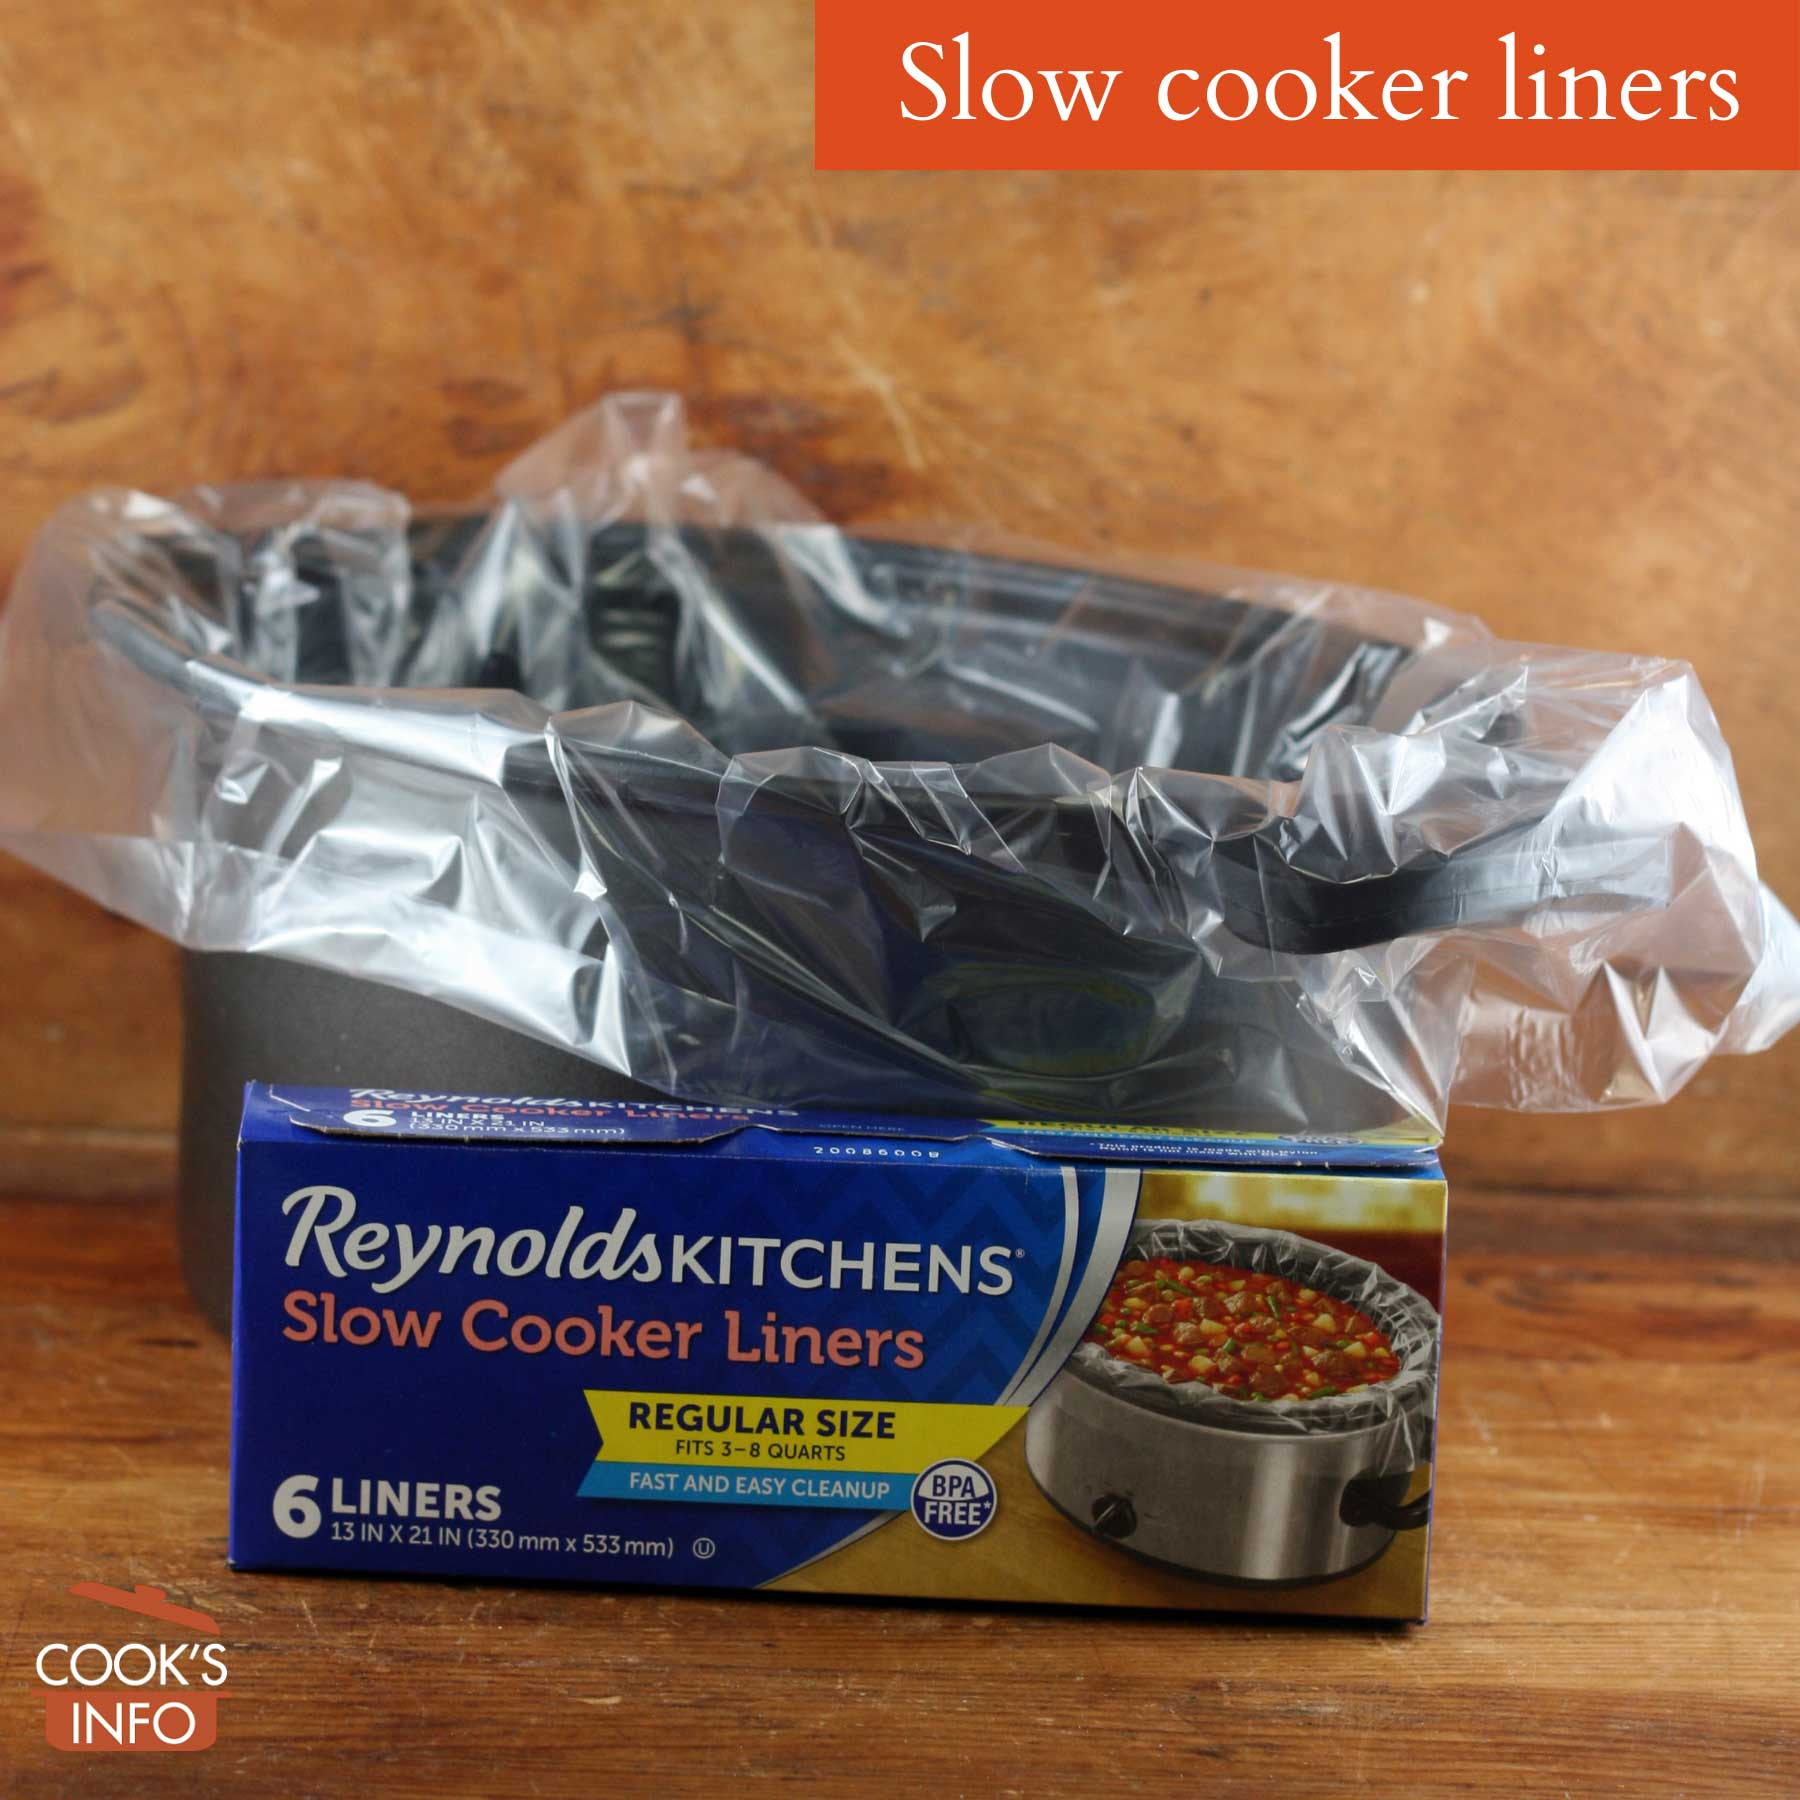 Slower cooker liners